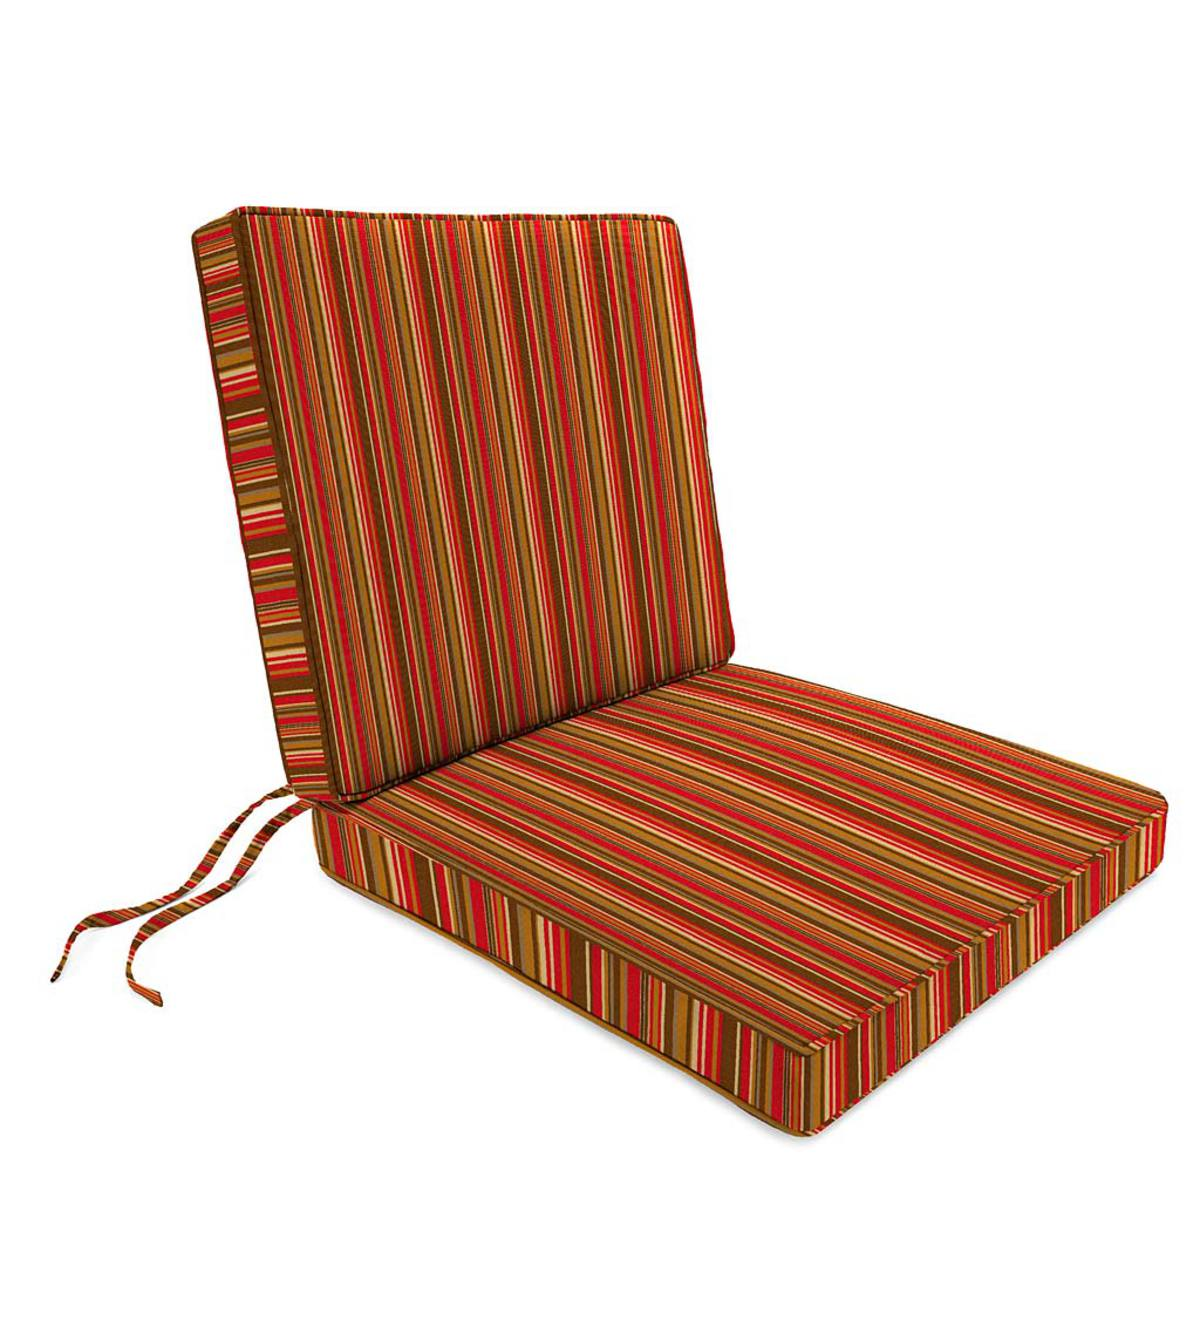 Deluxe Sunbrella Seat And Back Chair Cushion With Tie Seat 19 X 17